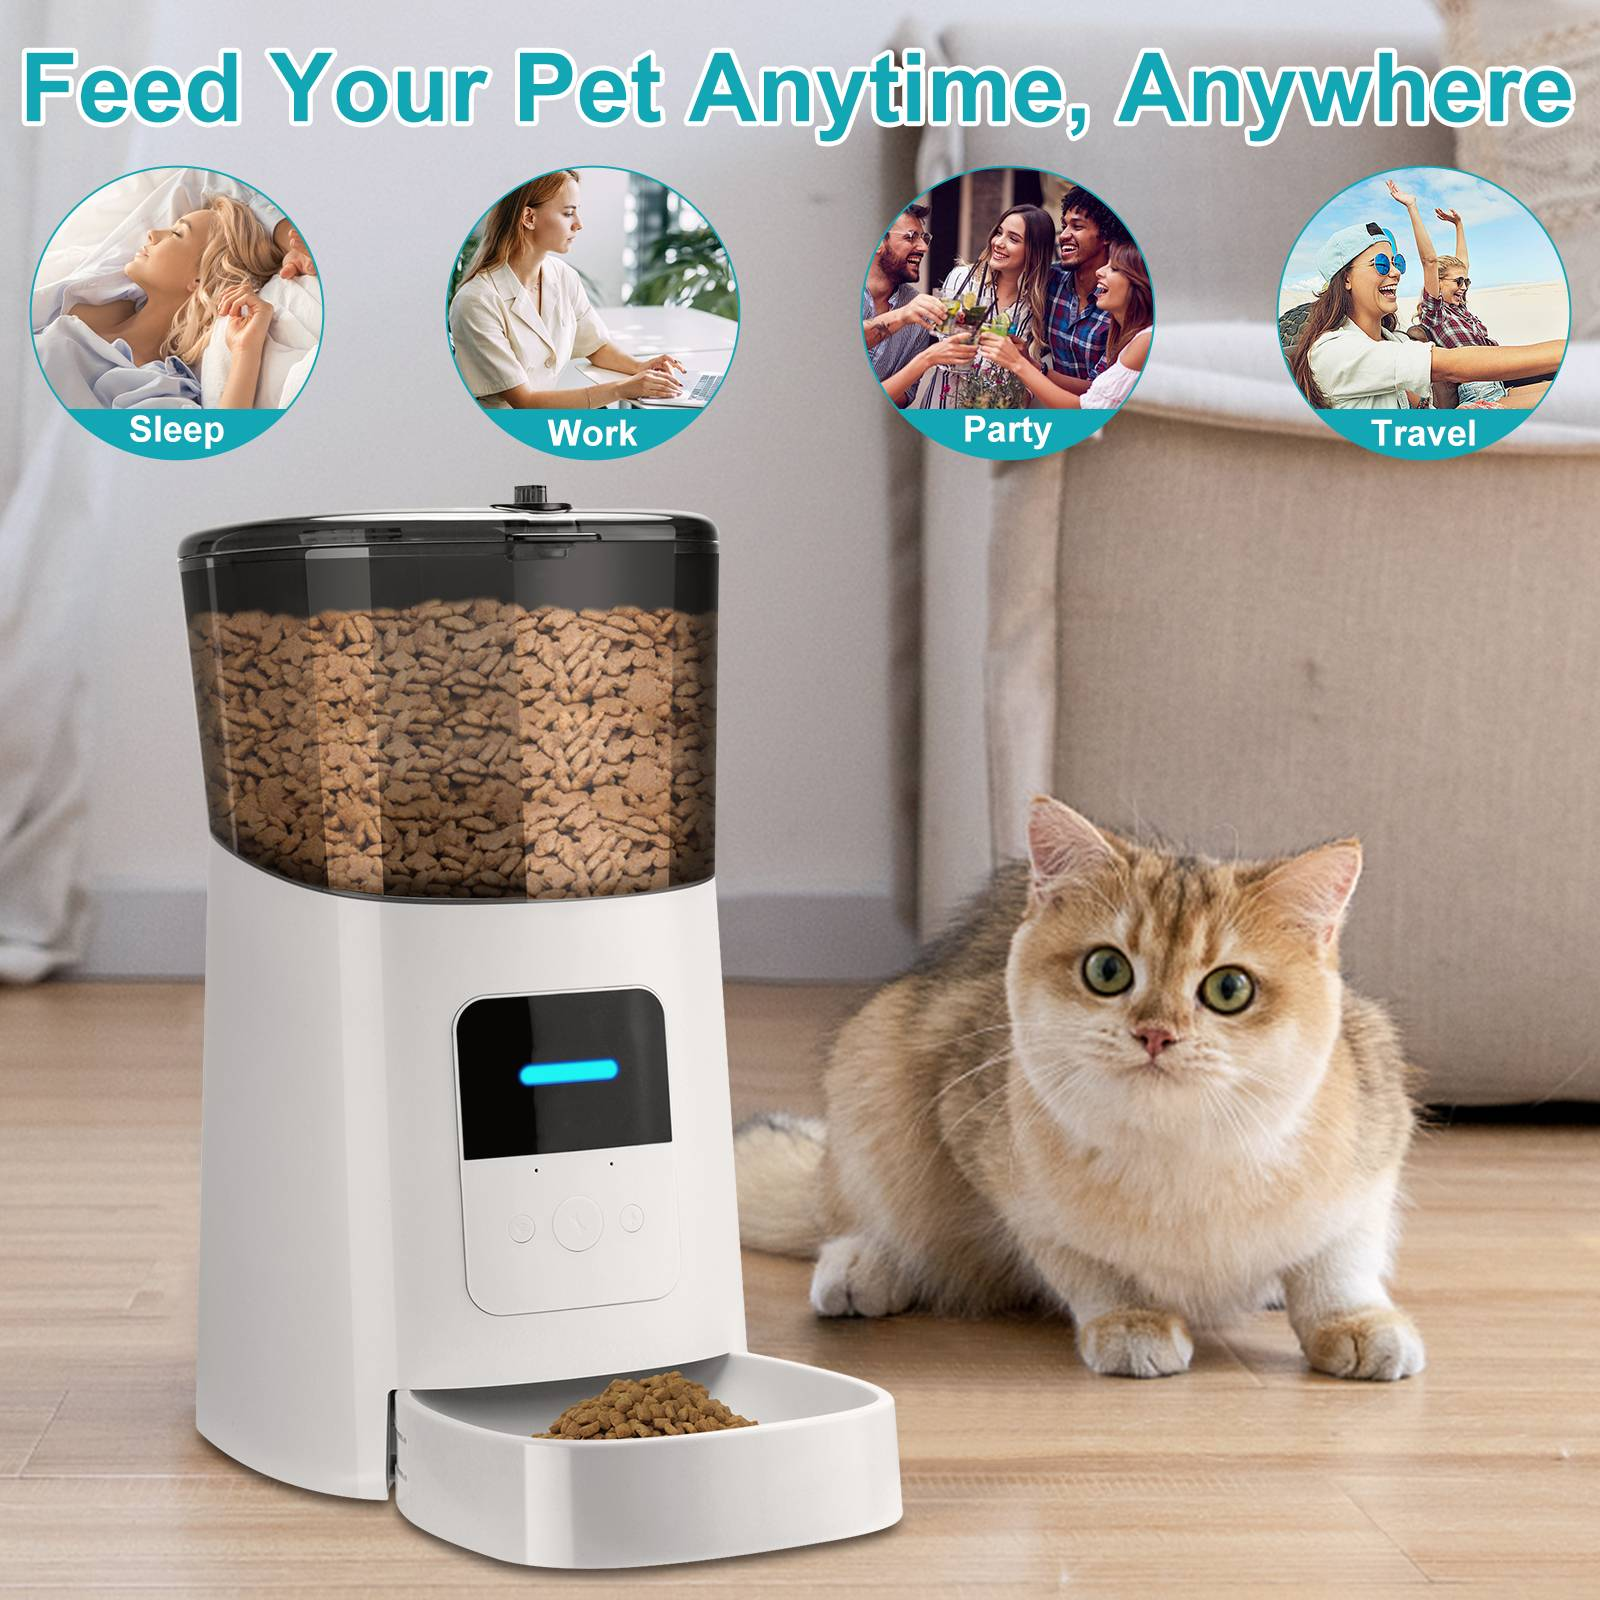 Pet Automatic Feeder 6L Wi-Fi Smart Feed Dog Cat Feeder Smartphone App for Mobile Voice Recorder and Timed Food Dispenser